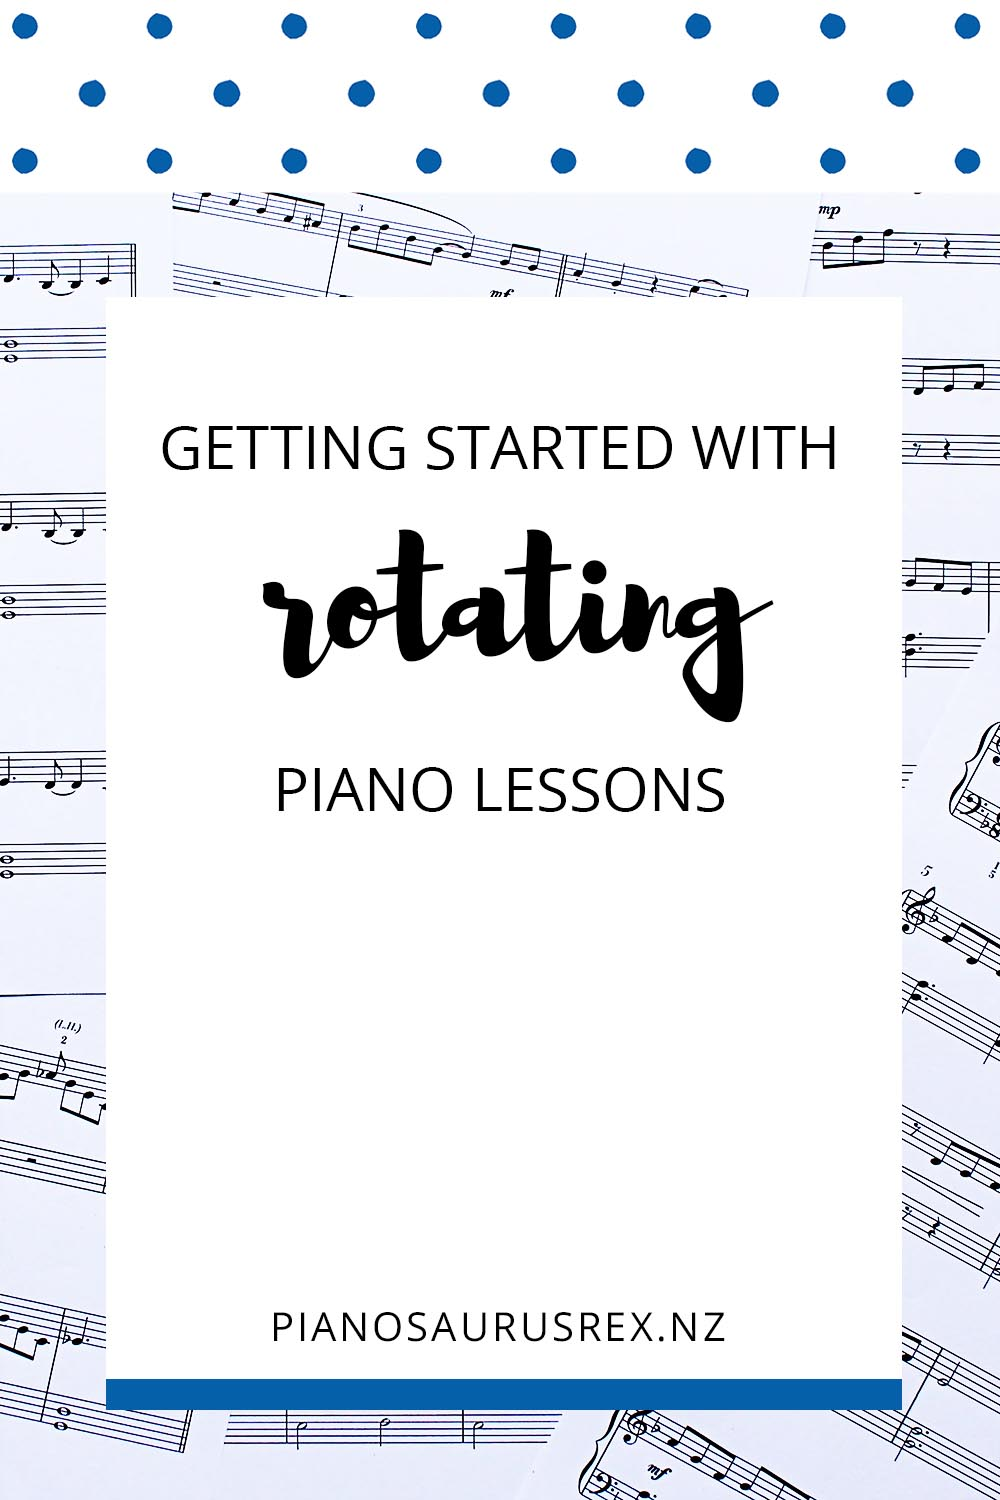 Getting Started With Rotating Lessons